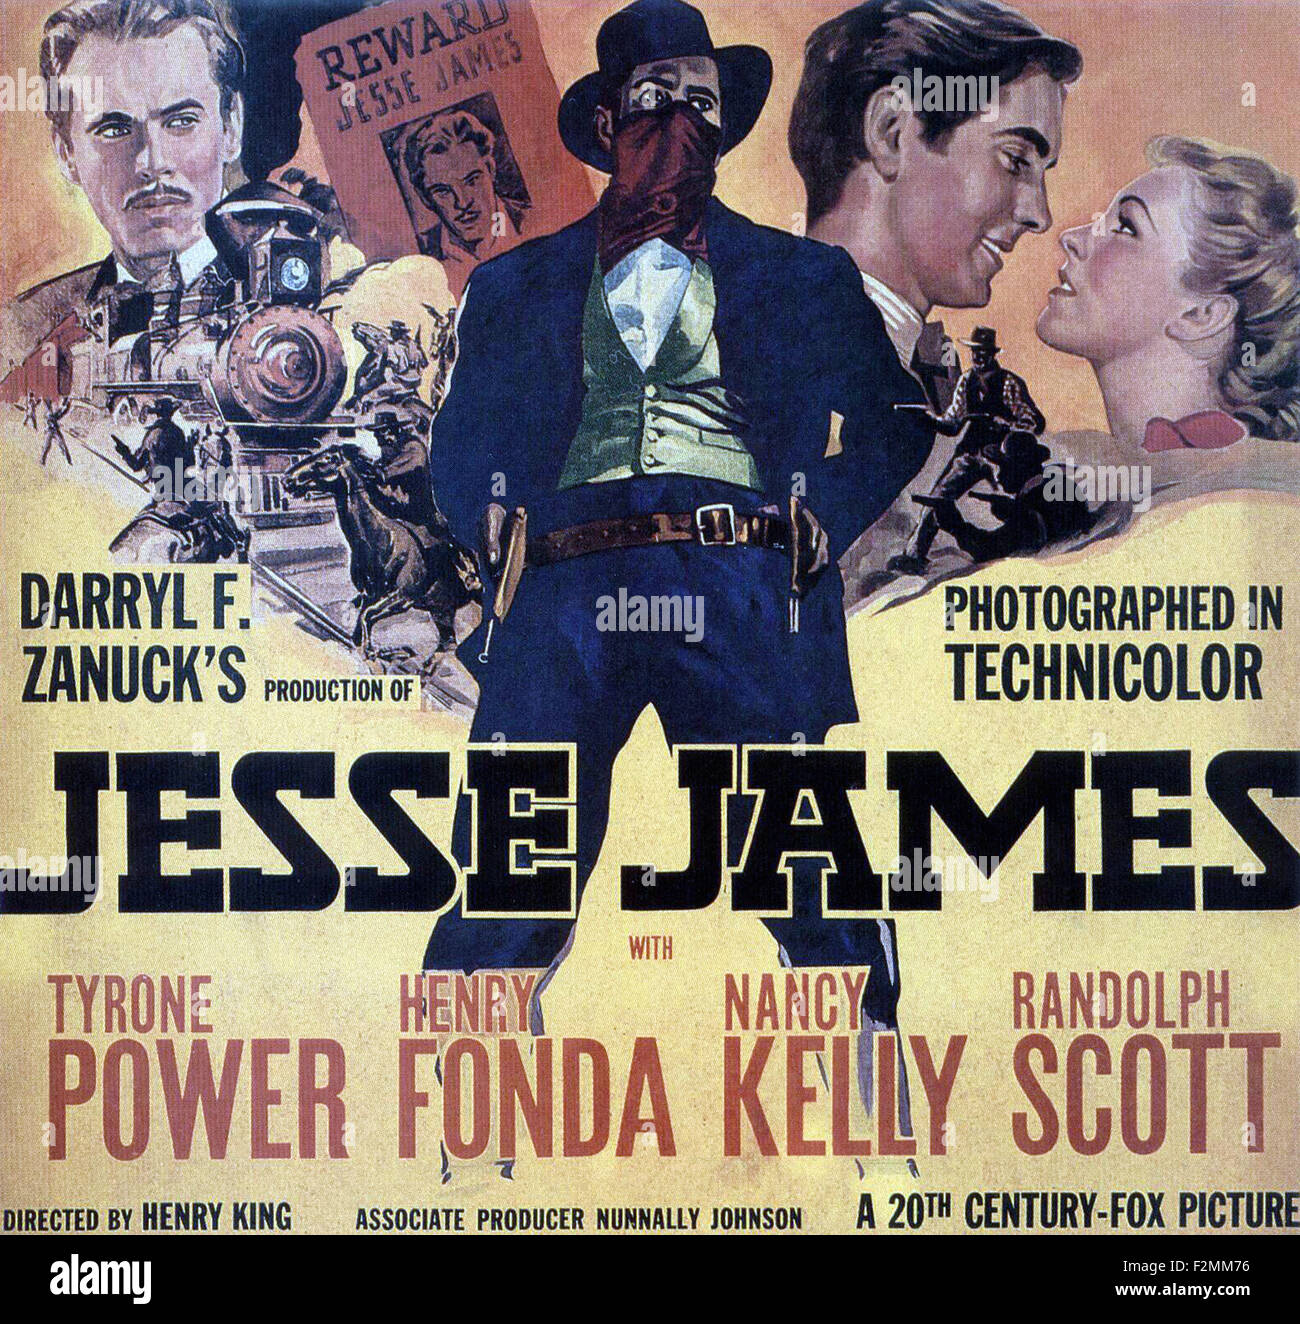 Image result for jesse james movie poster